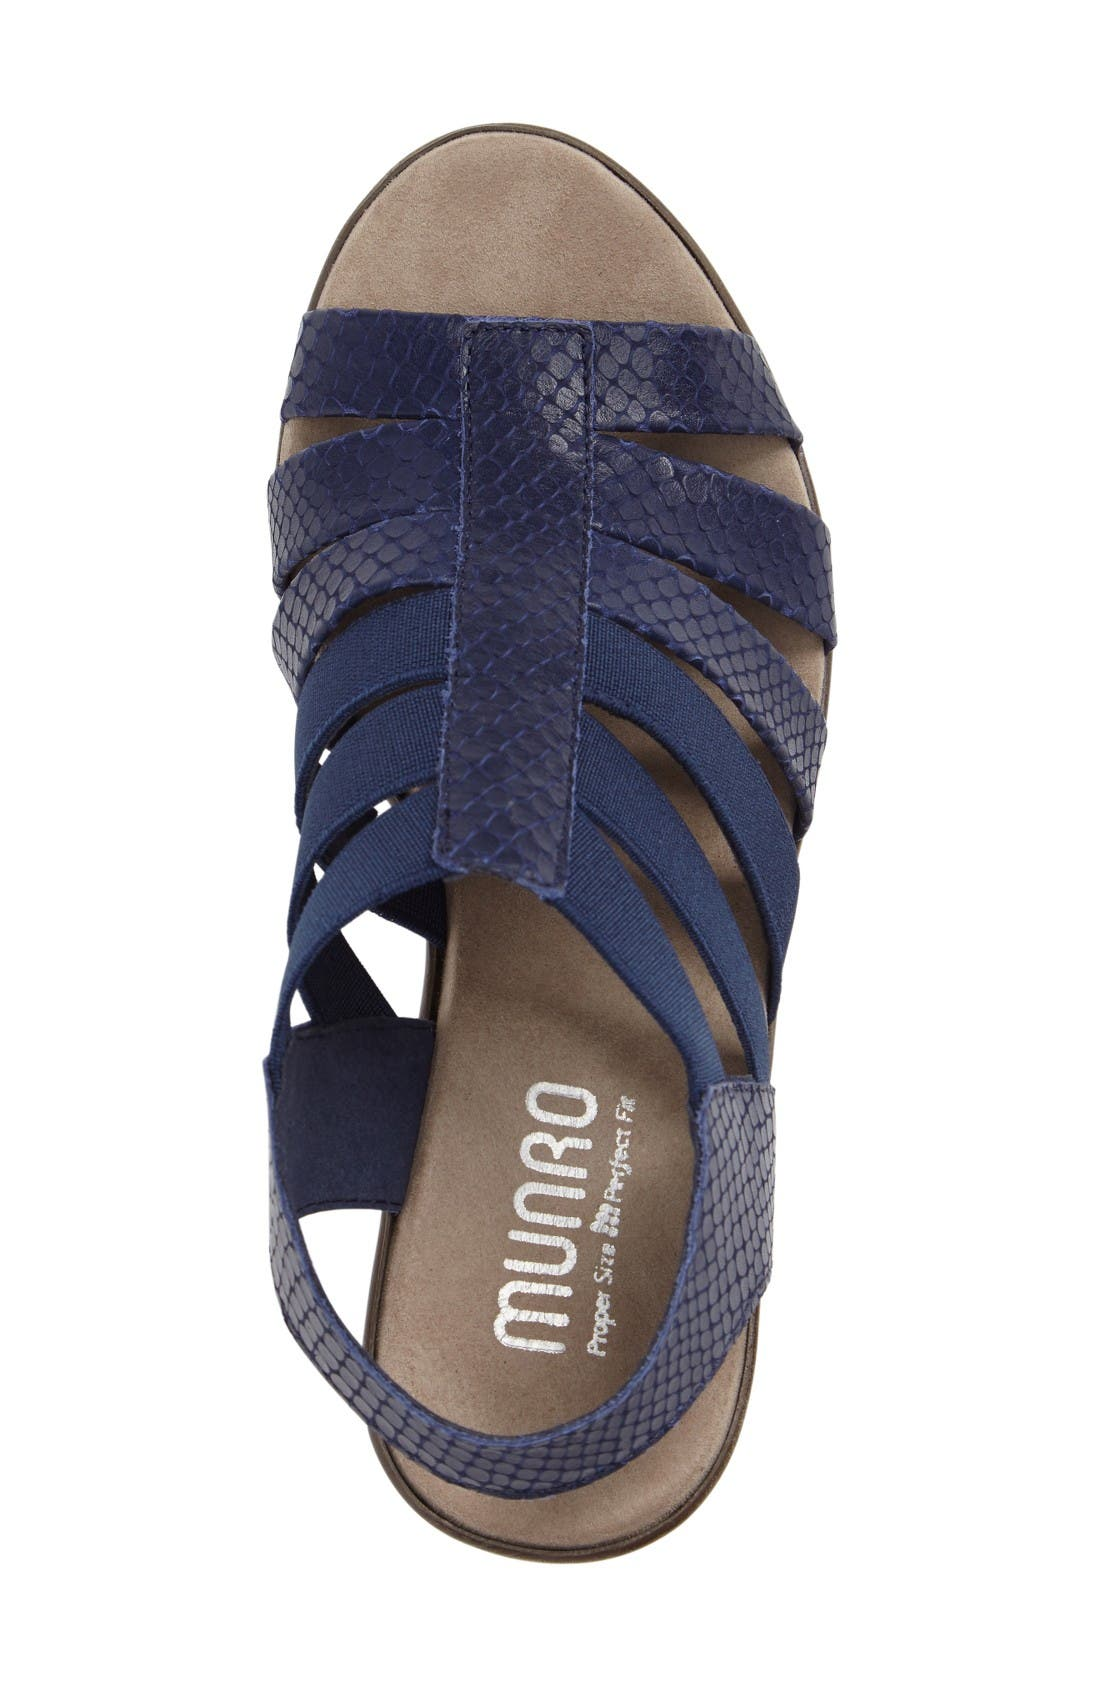 'Cookie' Slingback Sandal,                             Alternate thumbnail 3, color,                             Blue Leather